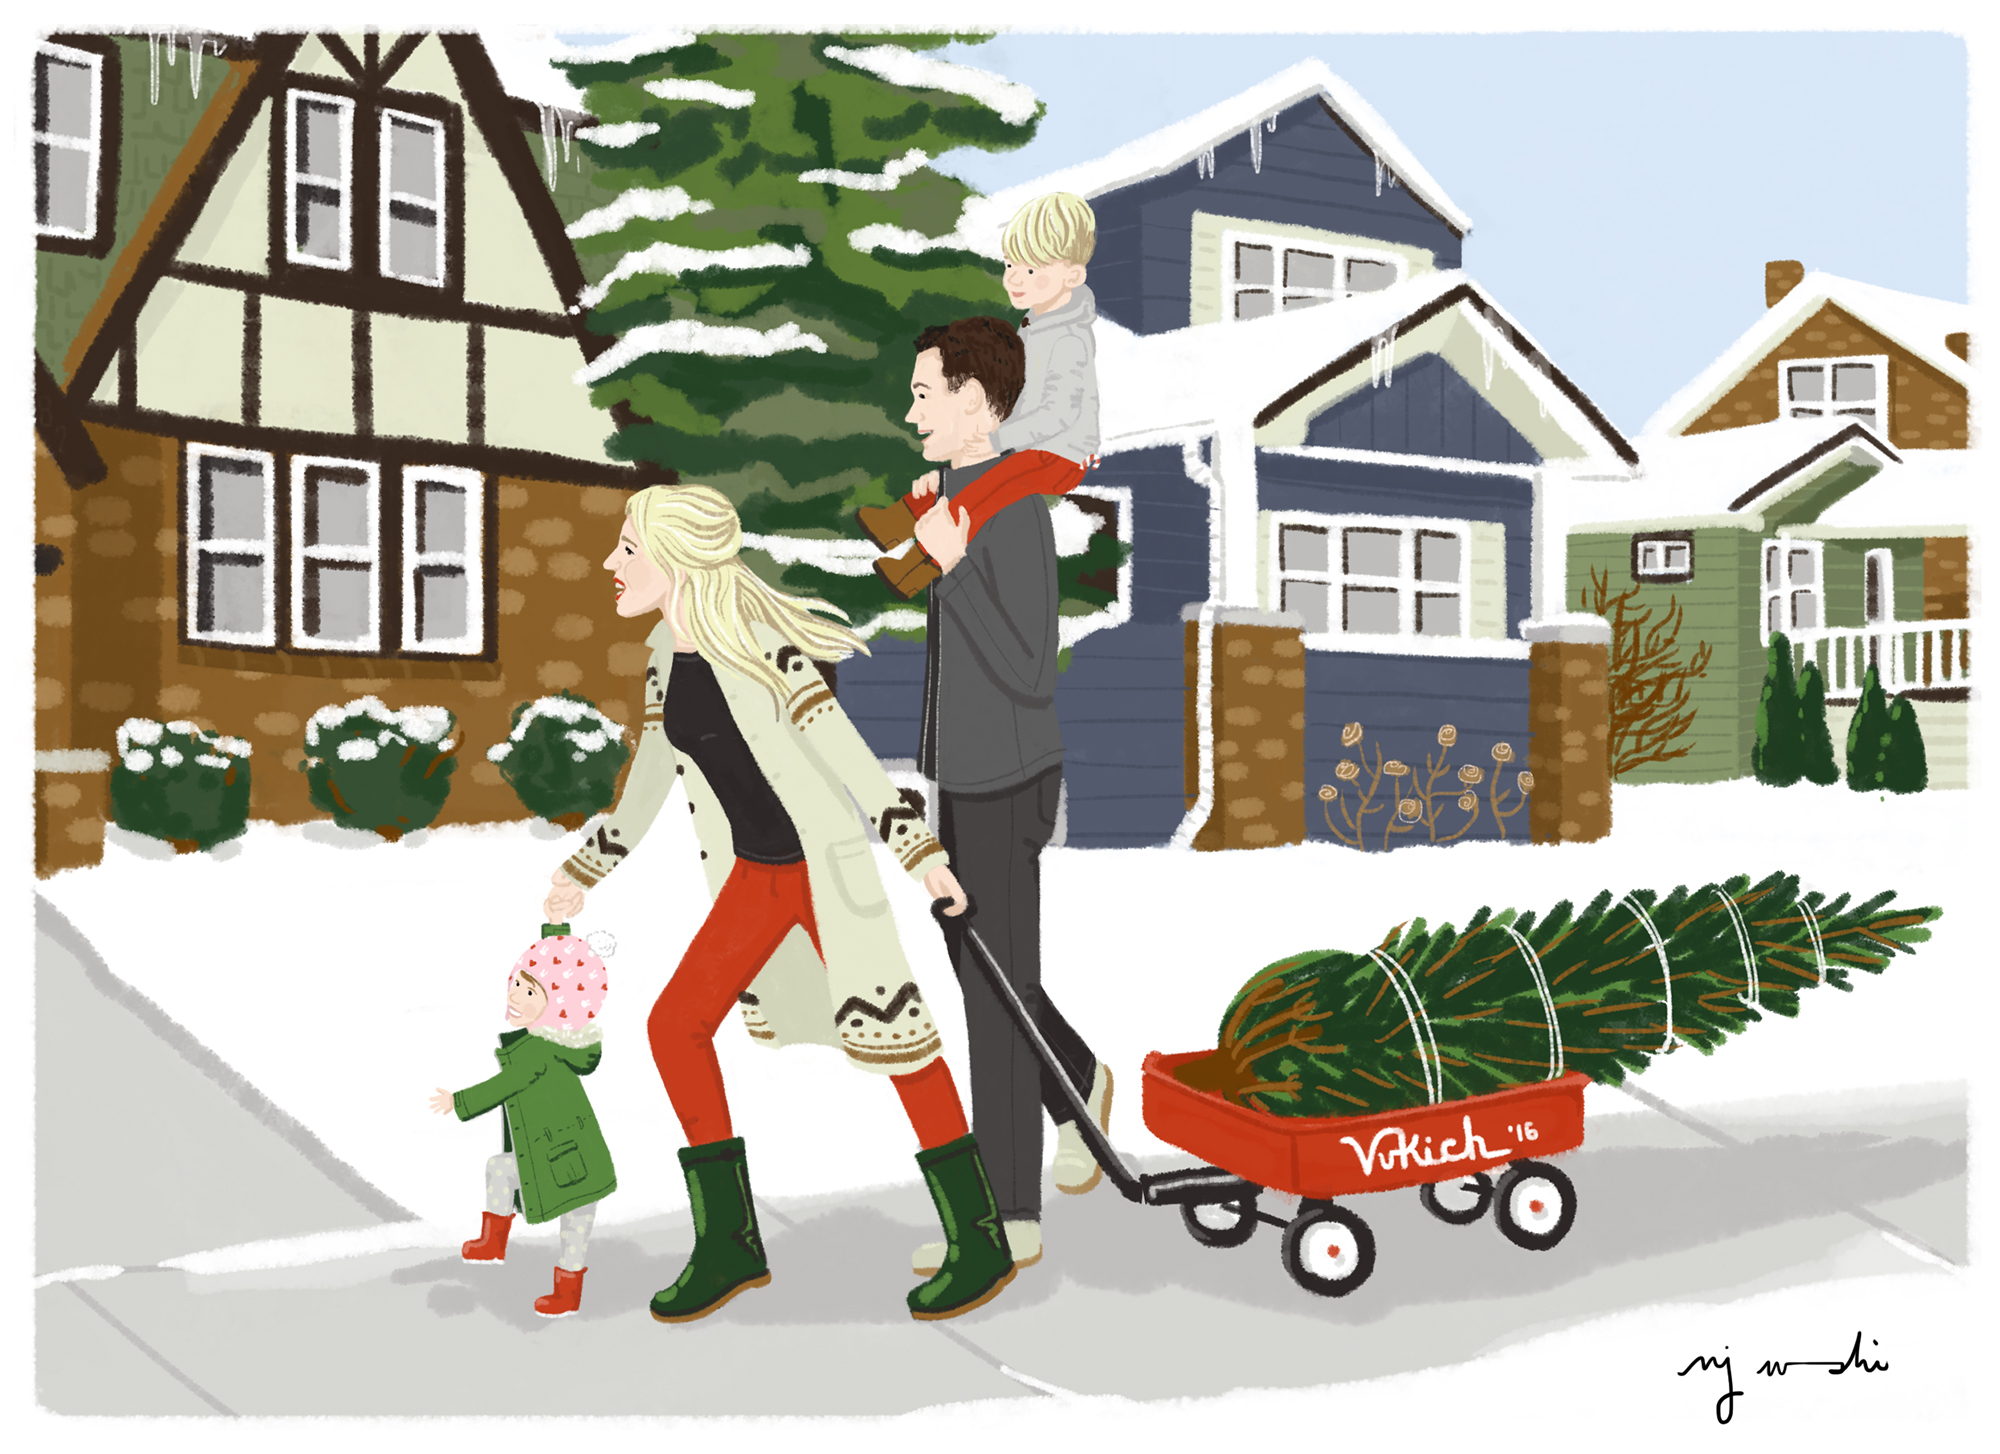 Vukich Christmas   | Ashley described bringing home the family's Christmas tree from the lot at the end of their street as one of those truly idyllic moments, wishing she could have captured the moment on film. Since she couldn't, I drew it! Here the family is seen pulling their Christmas tree home in their little red wagon, with drawings of homes from their actual street|   Digital drawing, 5x7